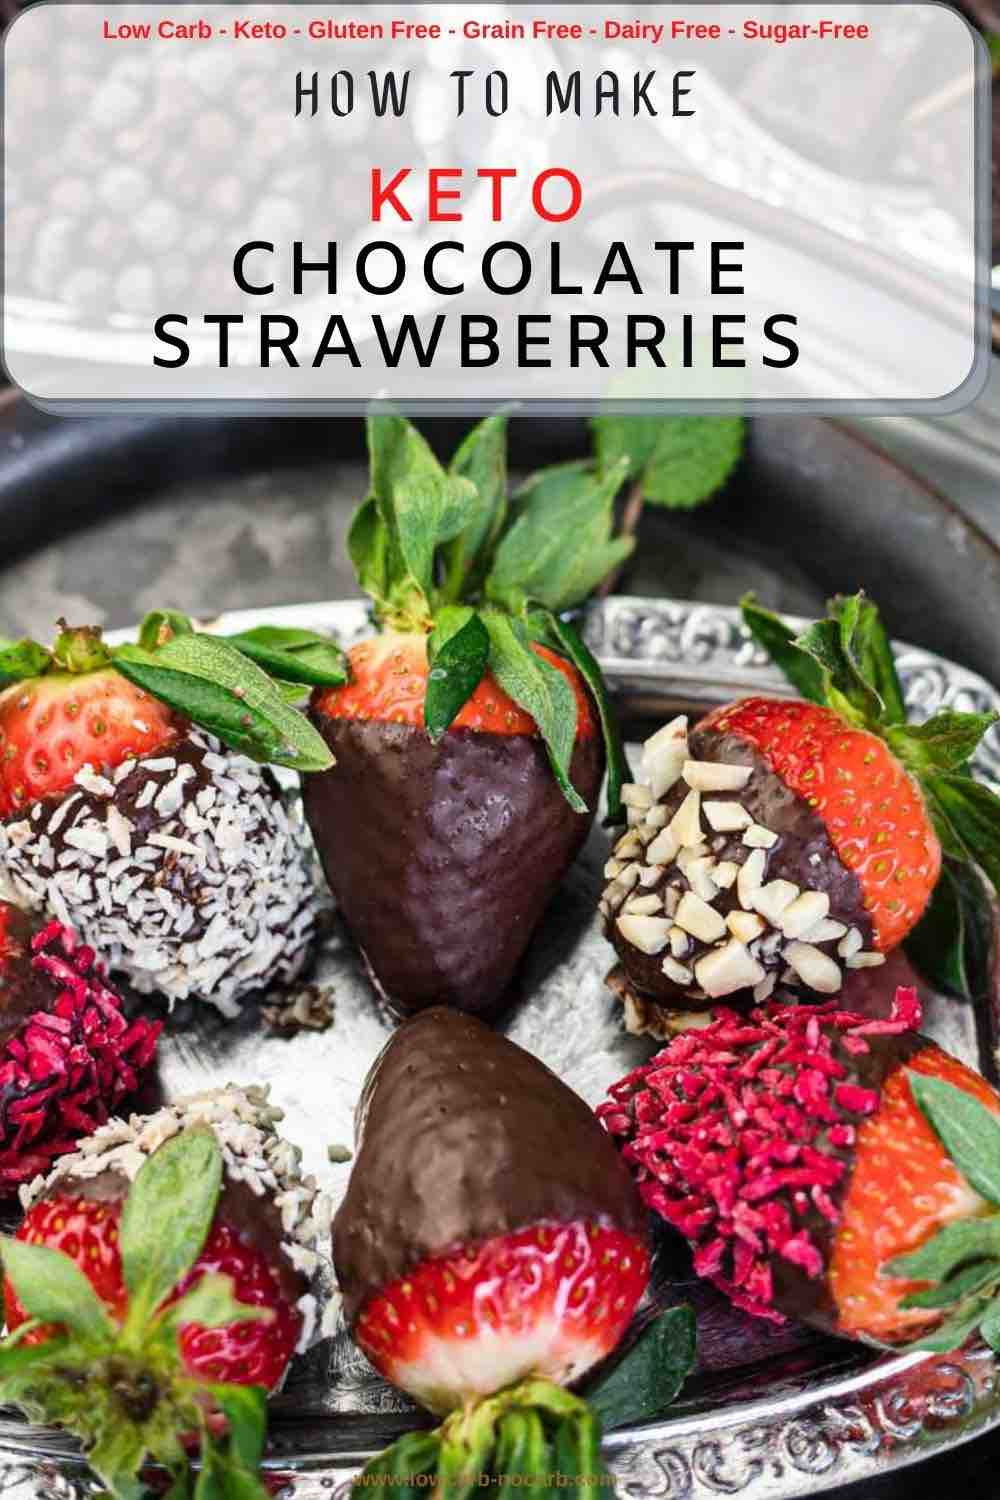 Healthy Chocolate Covered Strawberries with various toppings